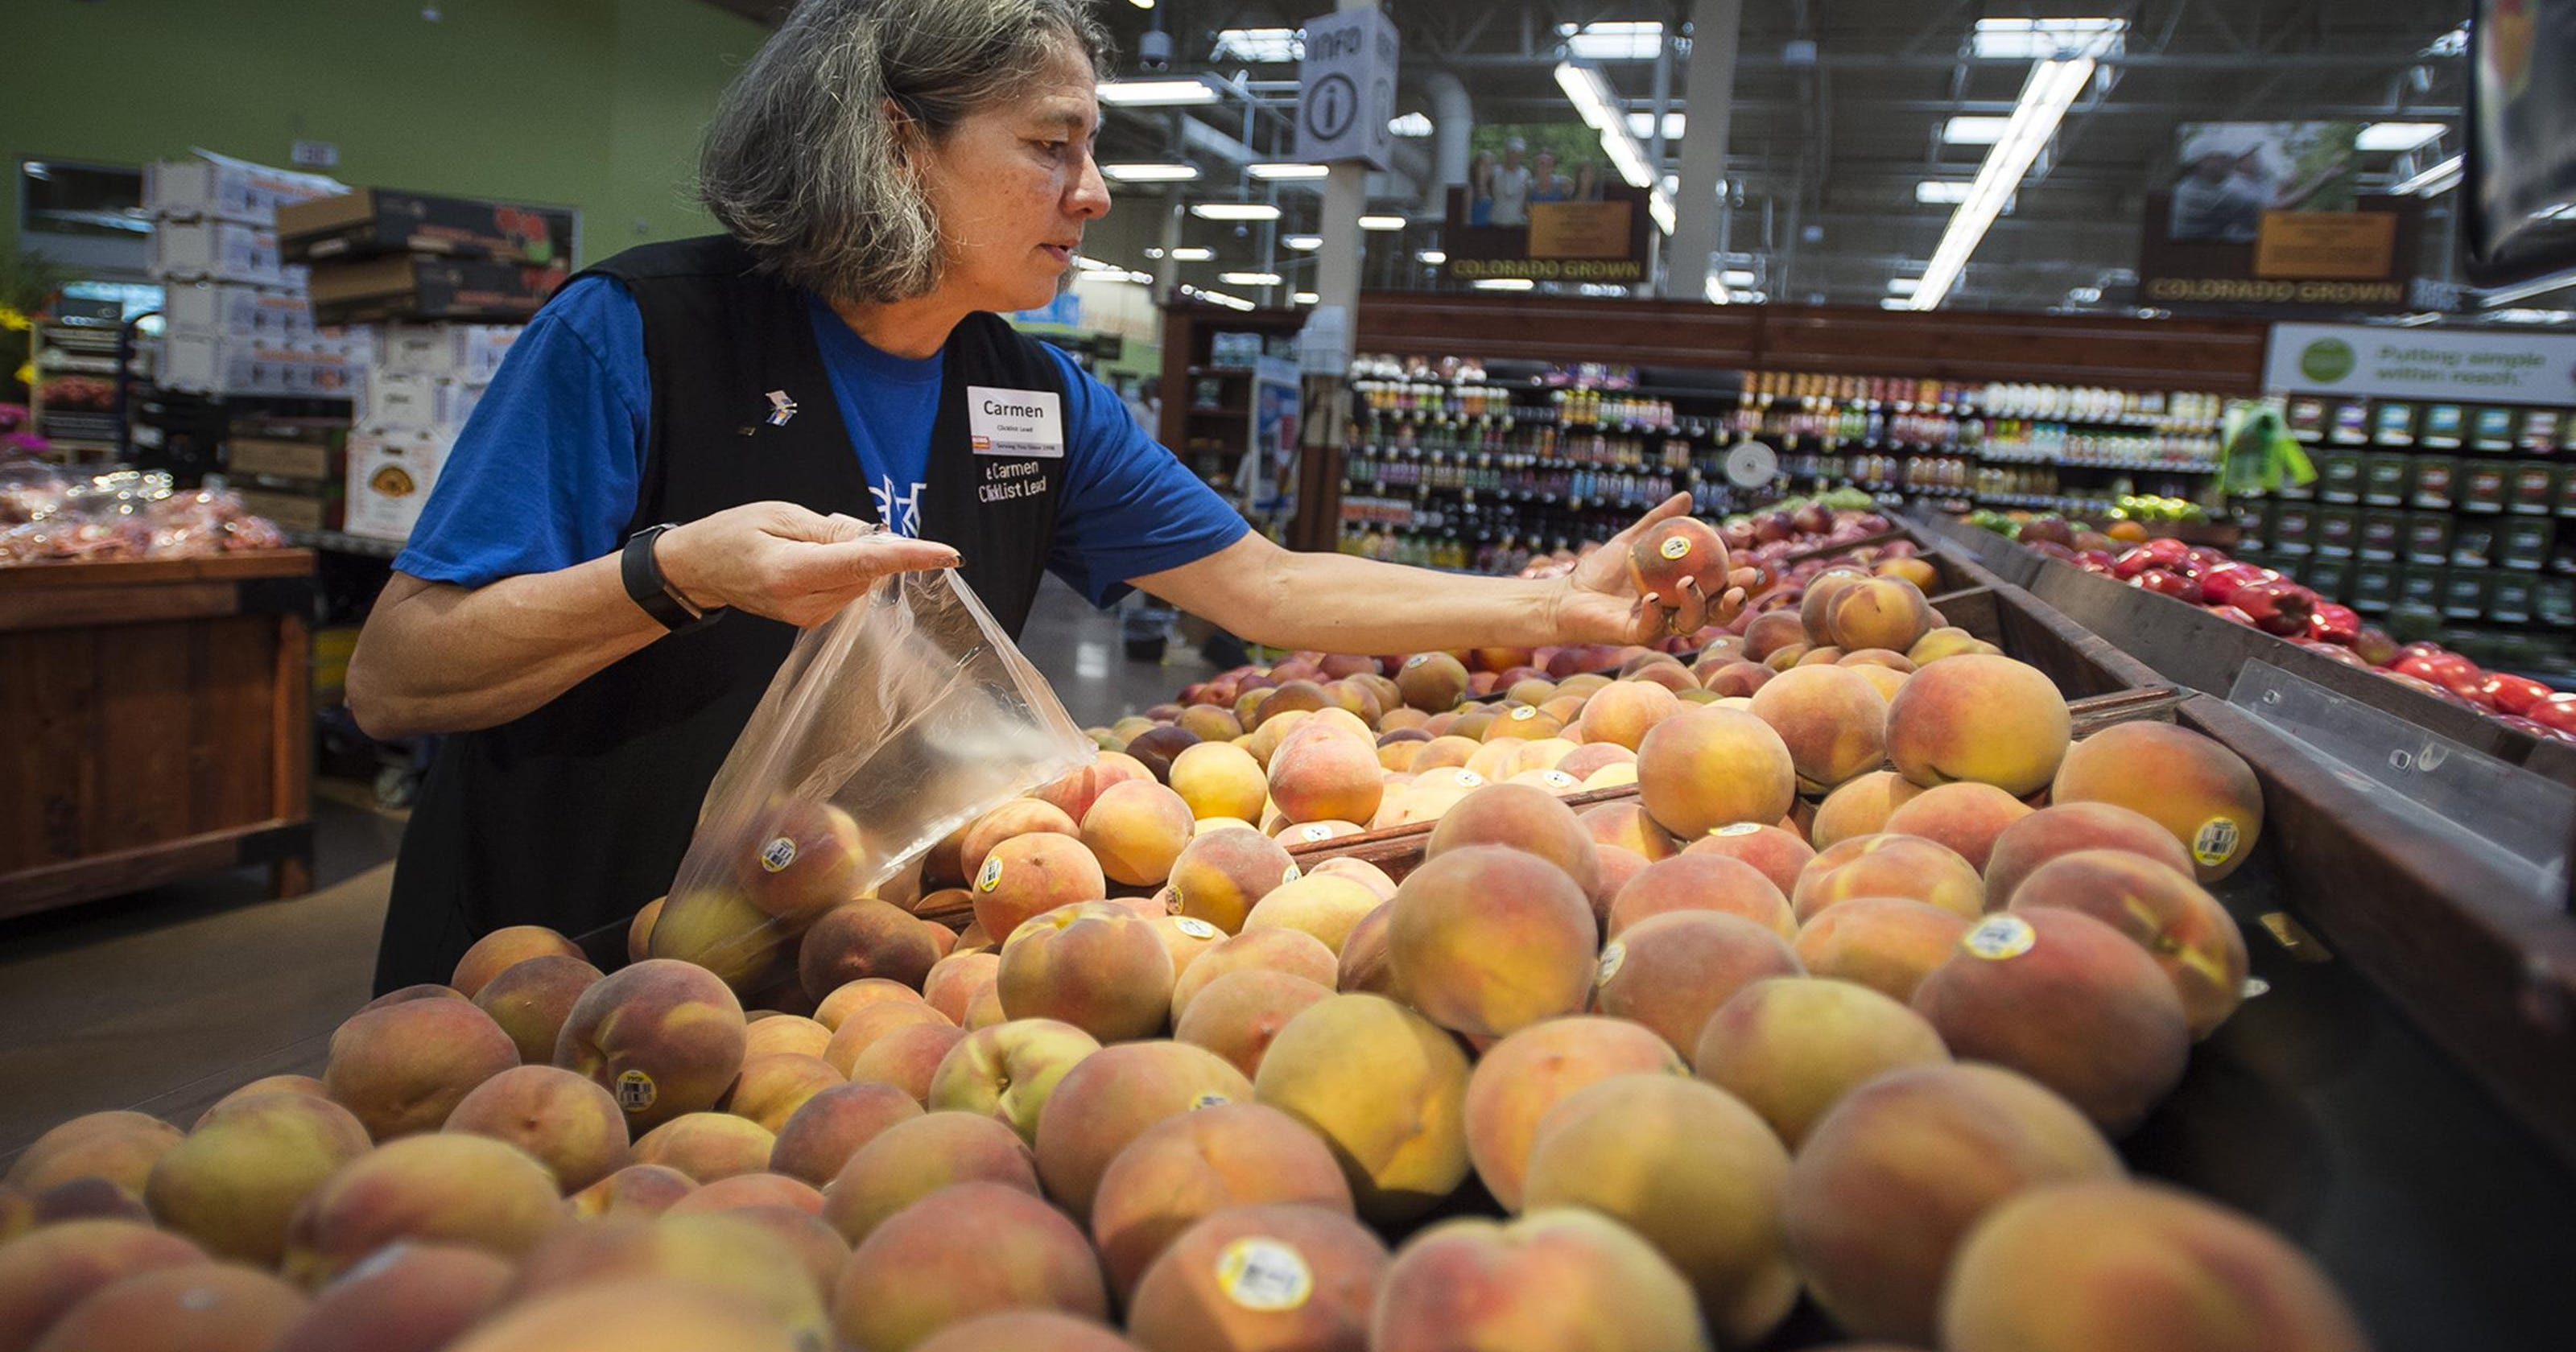 King Soopers is hiring more than 1,000 new employees in Colorado